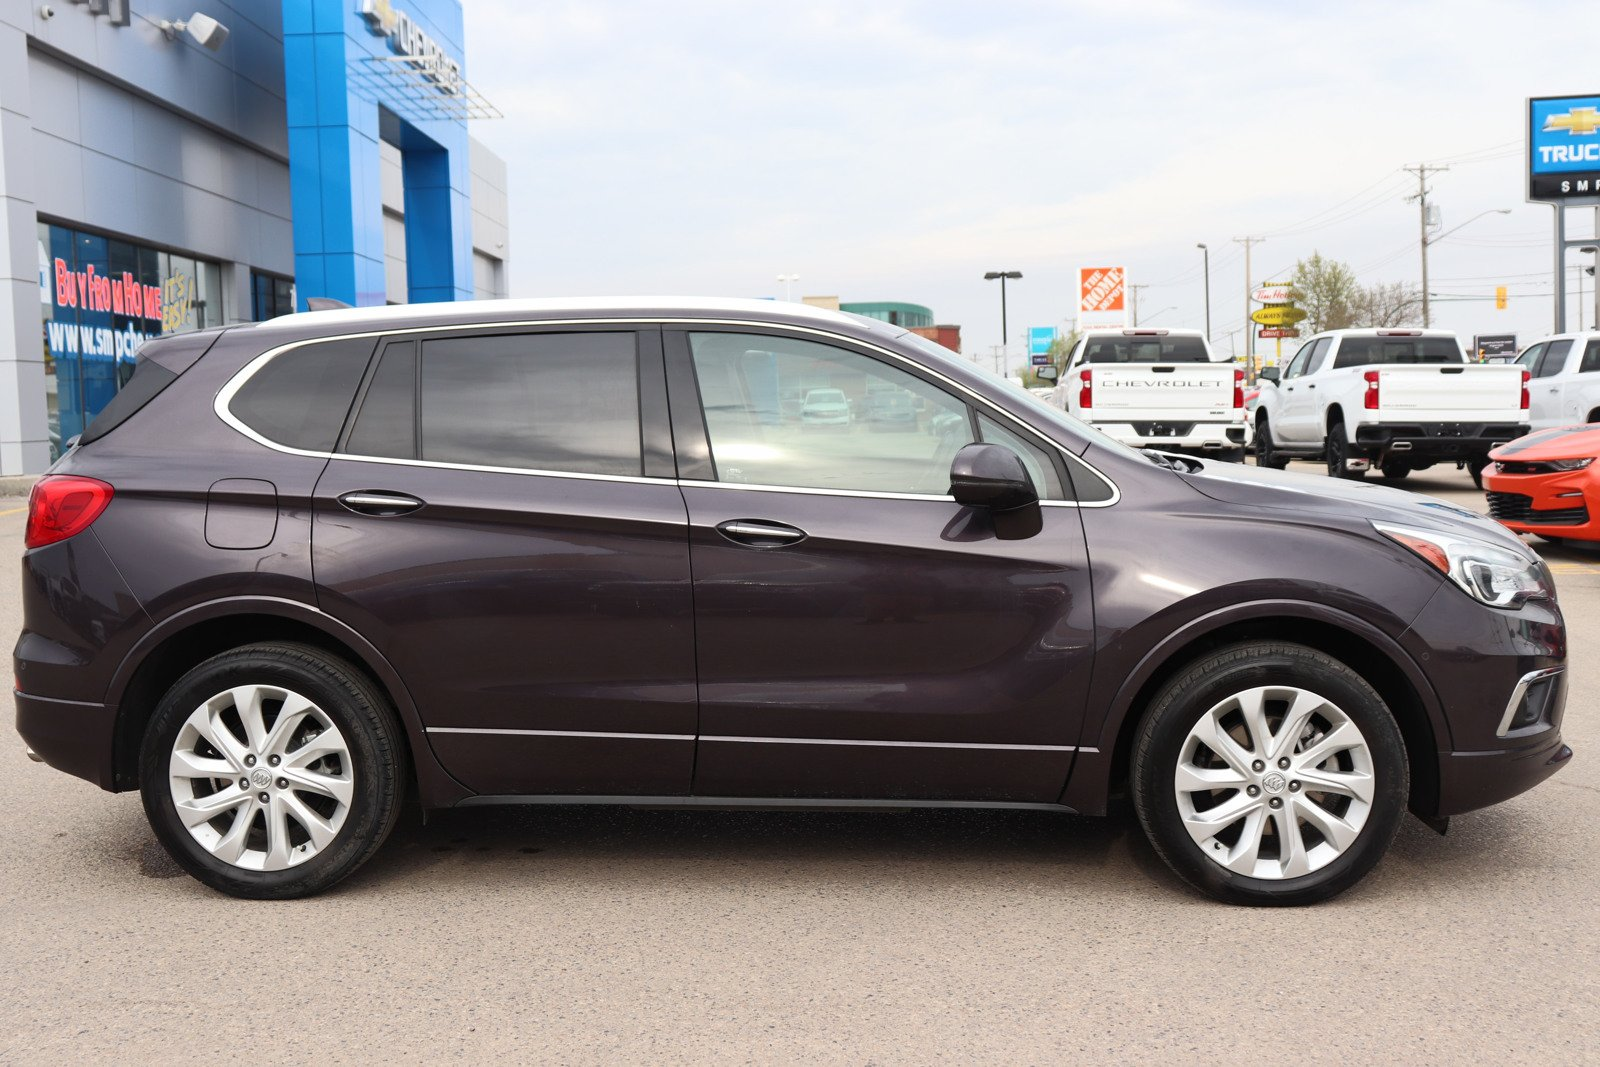 Certified Pre-Owned 2018 Buick Envision Premium II - Heads Up Dispaly, Leather, Sunroof, Navigation